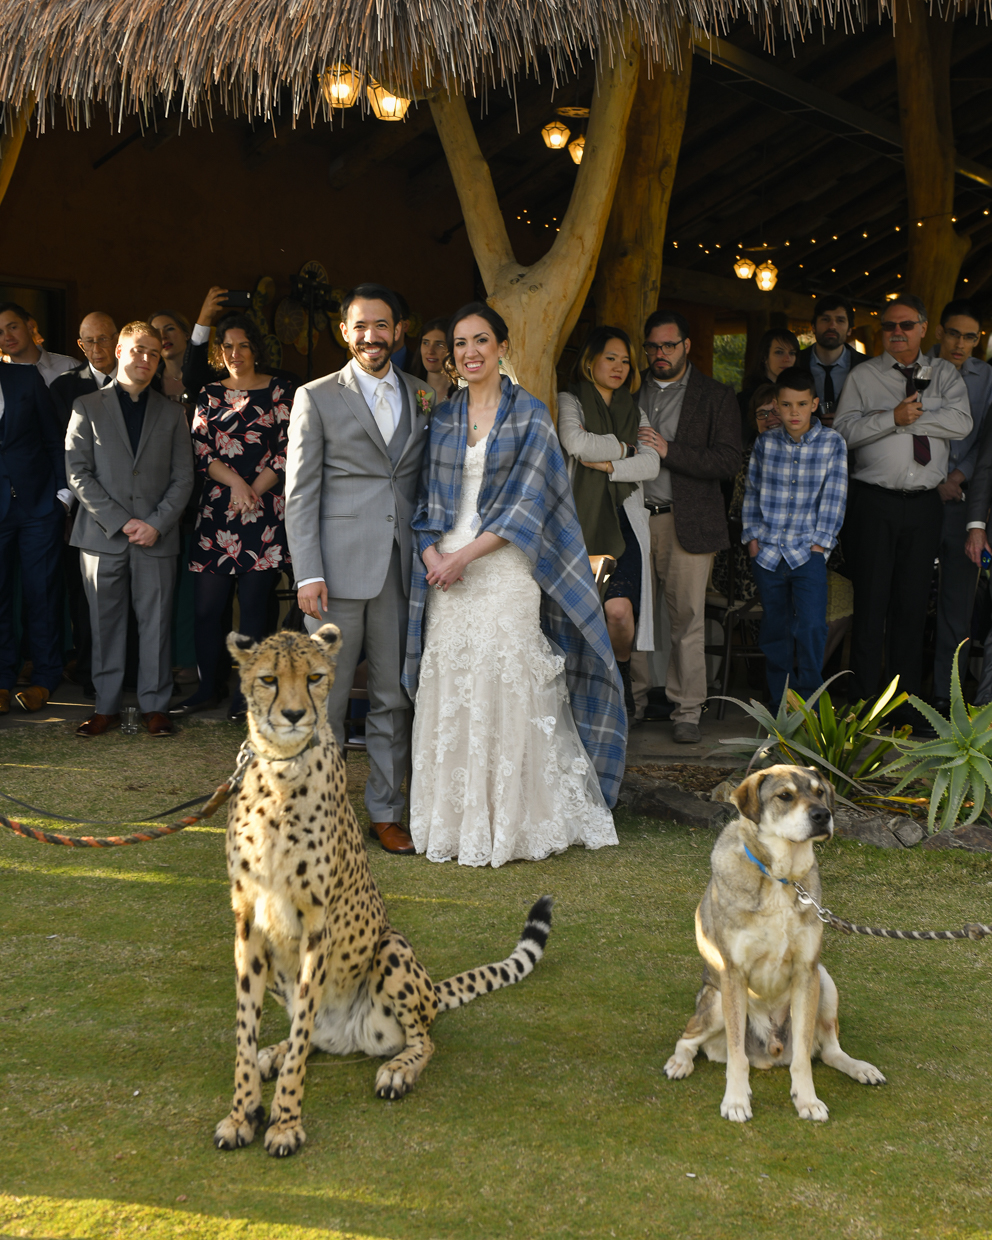 Safari-Park-Wedding-Stephanie-and-Sam-Brant-Bender-Photography-049.jpg